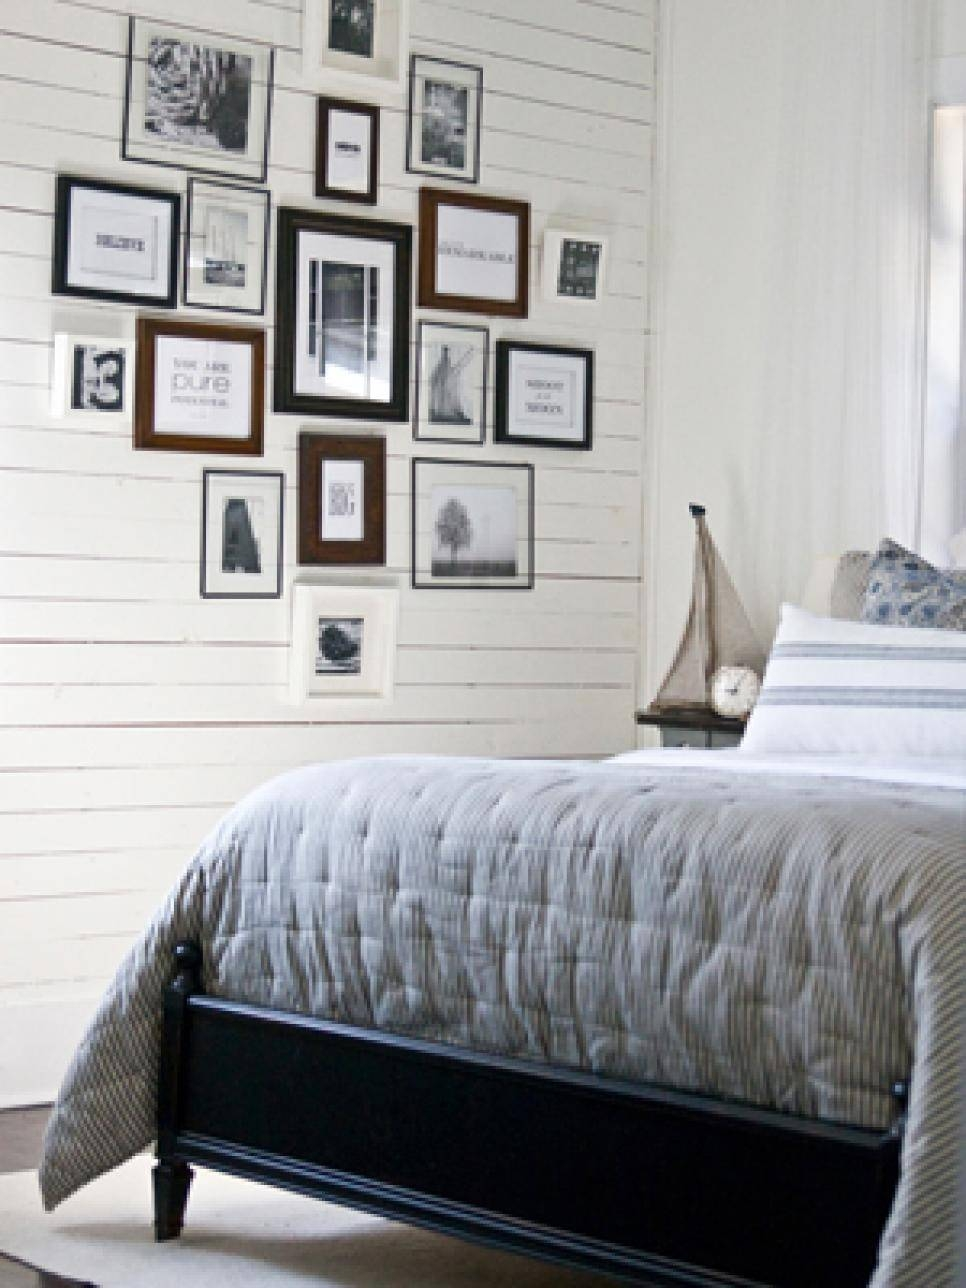 10 Ways To Display Bedroom Frames | Hgtv In Most Recent Bedroom Framed Wall Art (View 1 of 20)